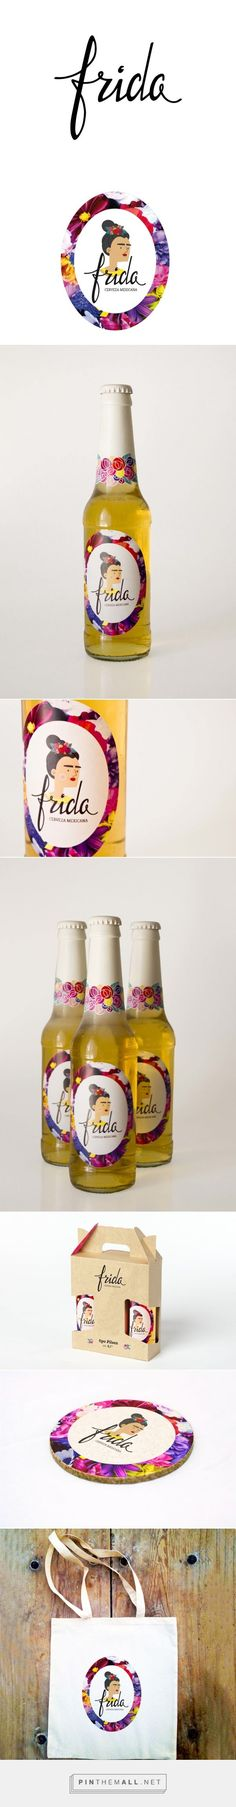 The most beautiful beer packaging we've seen so far! We'll be looking out for this beer at our next happy hour... #branding